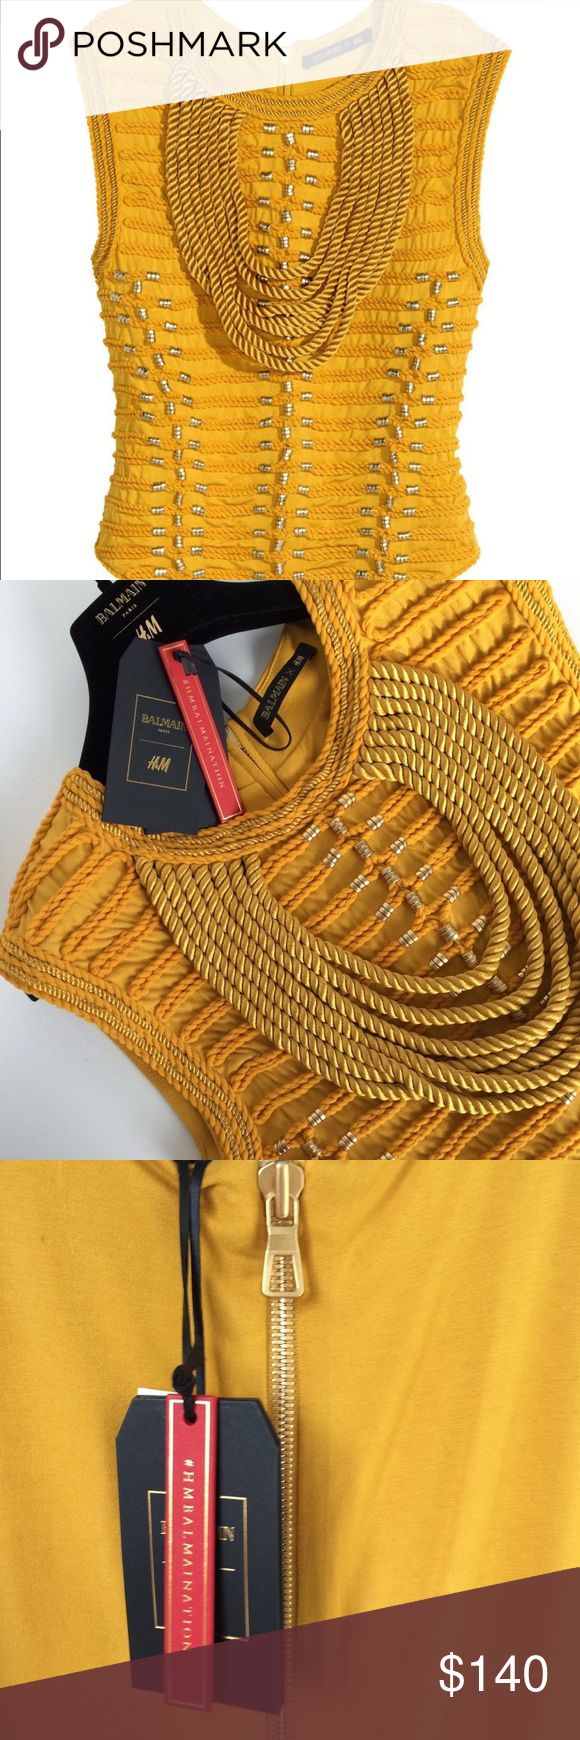 GORGEOUS H&M BALMAIN Yellow Rope Top SZ2 New with tags. Rare and hard to find. You'll love it! Will definitely last for years to come and will become a vintage piece! Balmain Tops Blouses